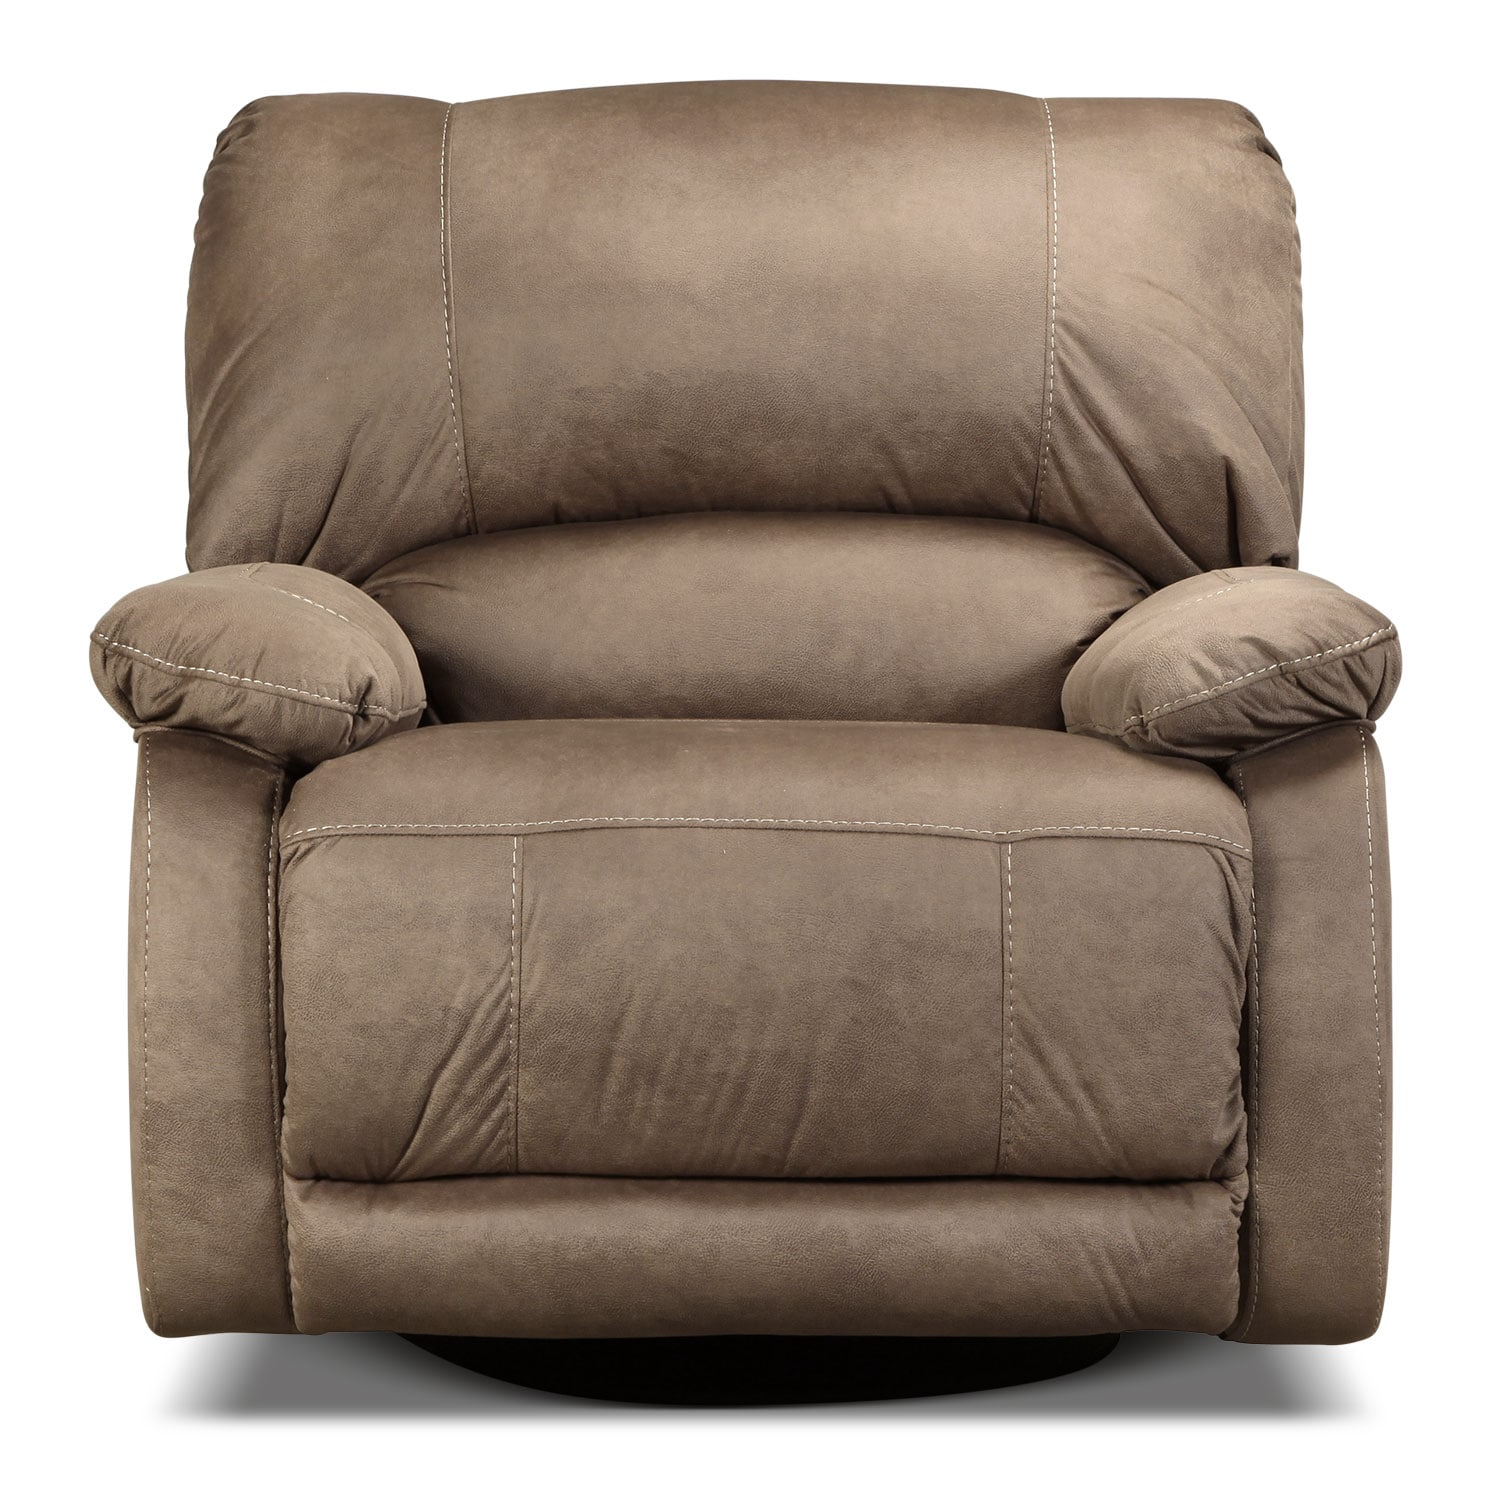 Newhall Swivel Glider Recliner - Taupe